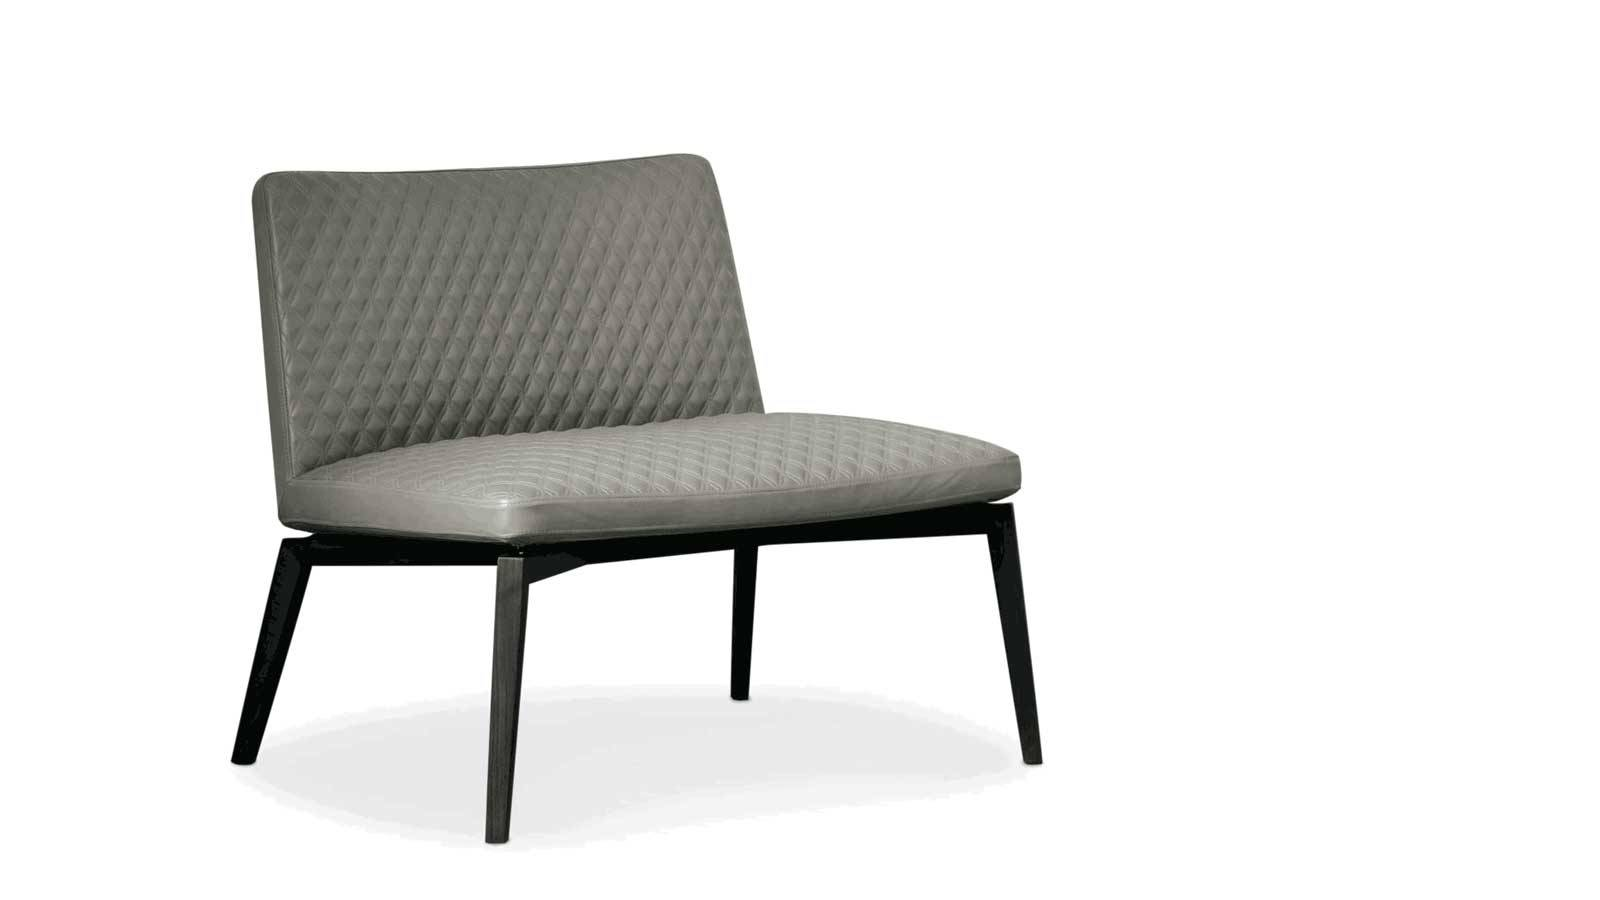 contemporary design furniture by Giuseppe Bavuso for Alivar